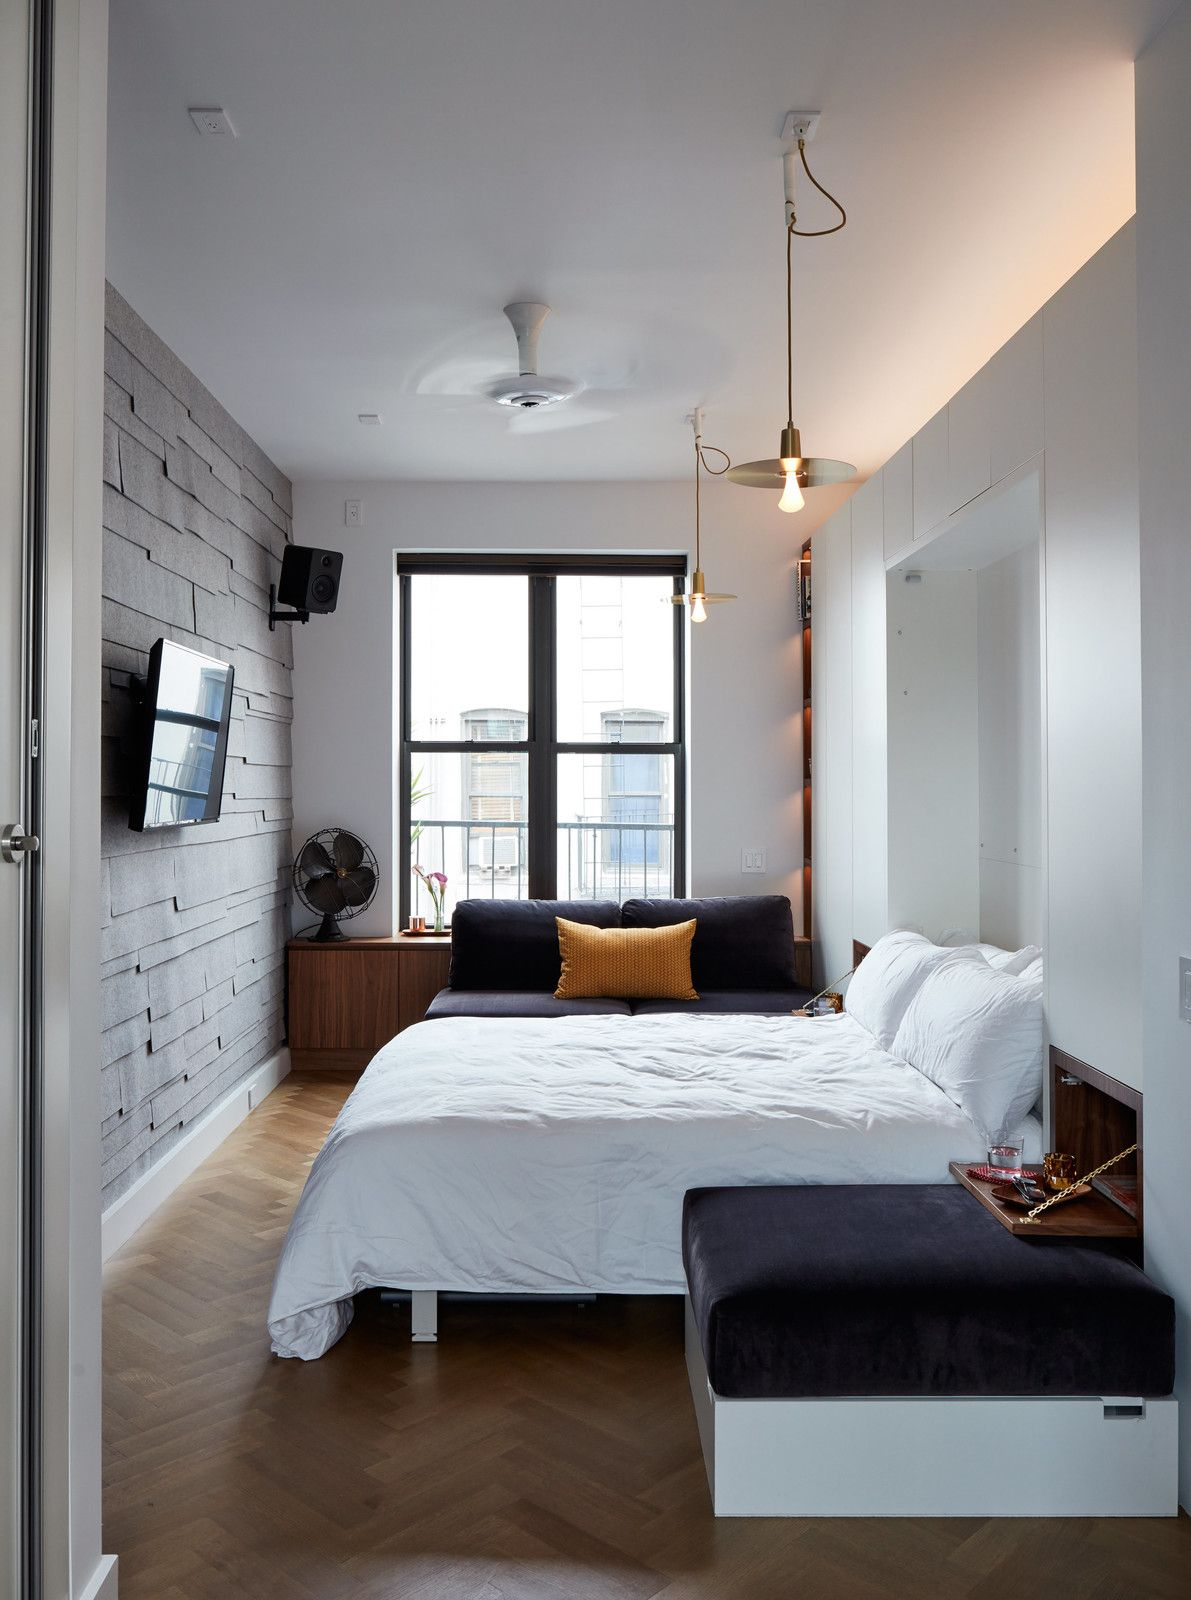 Small Space Living In A Soho Apartment Small Apartment Bedrooms Studio Apartment Decorating Small Bedroom